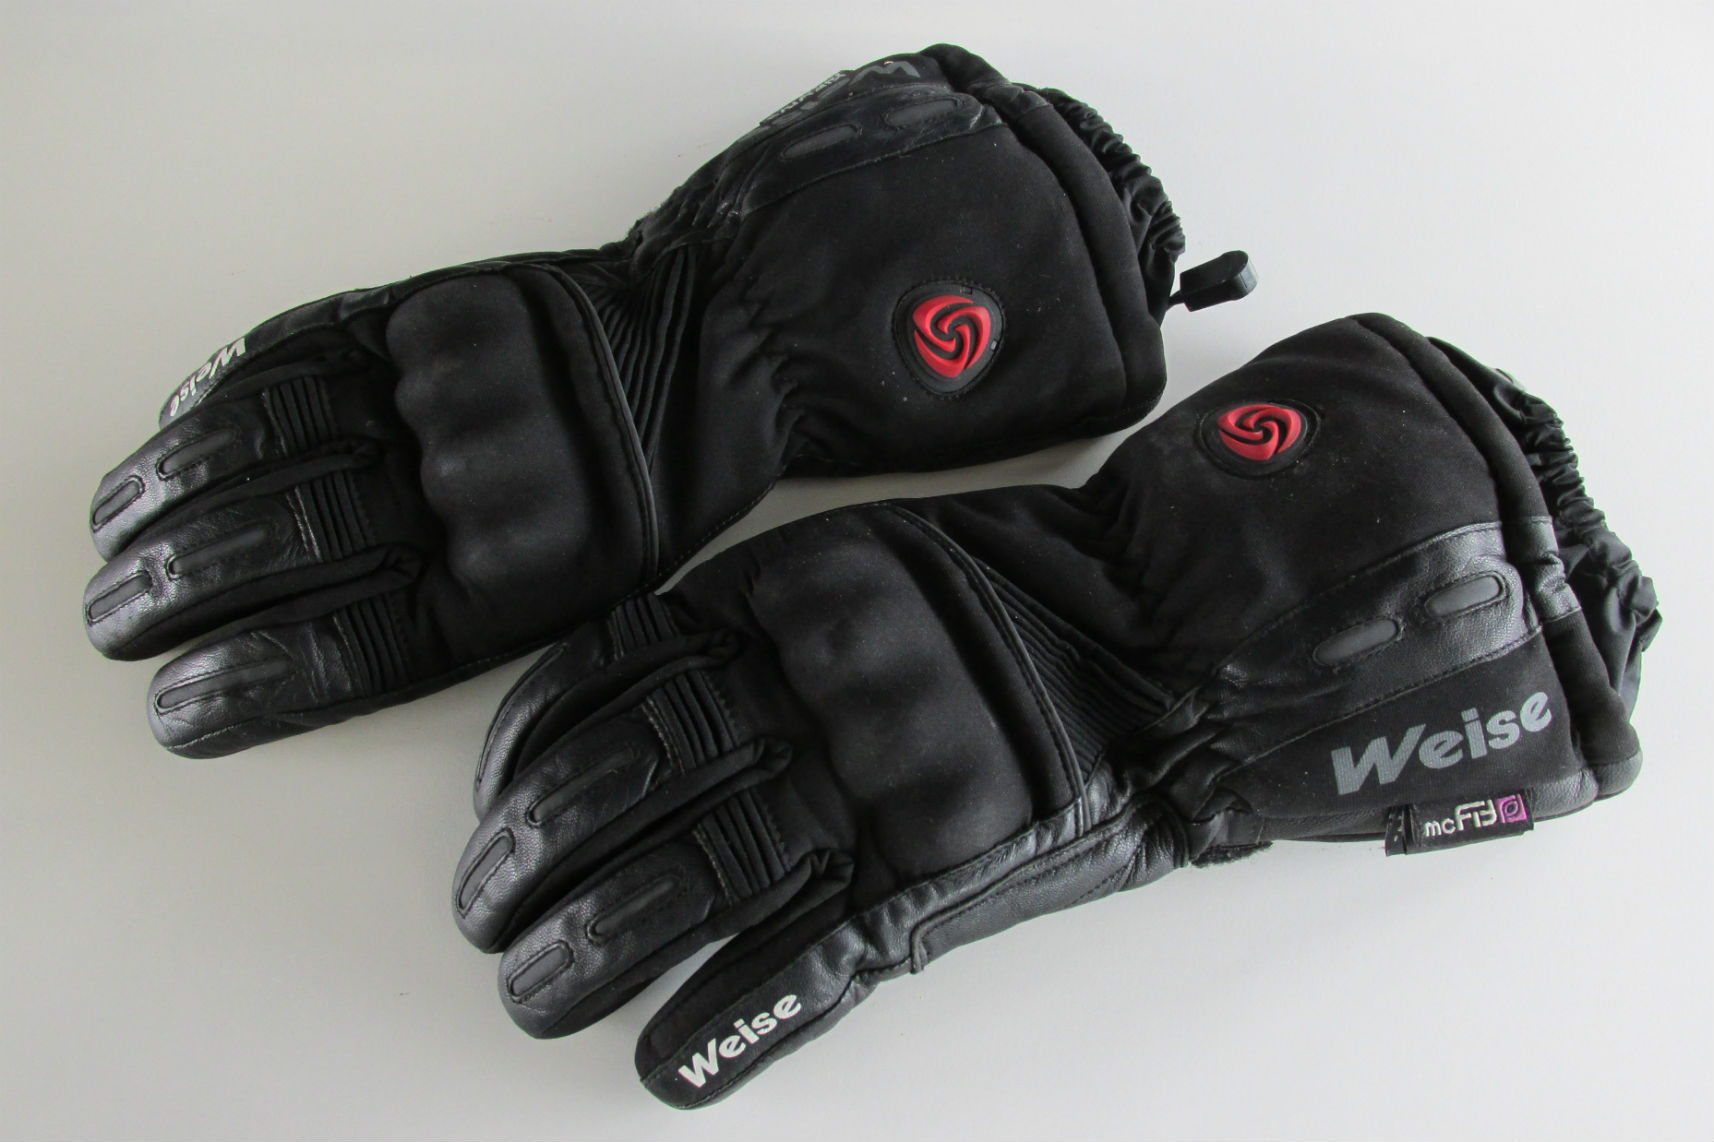 Heated motorcycle gloves vs heated grips - Used Review Weise Montana Element Heated Gloves